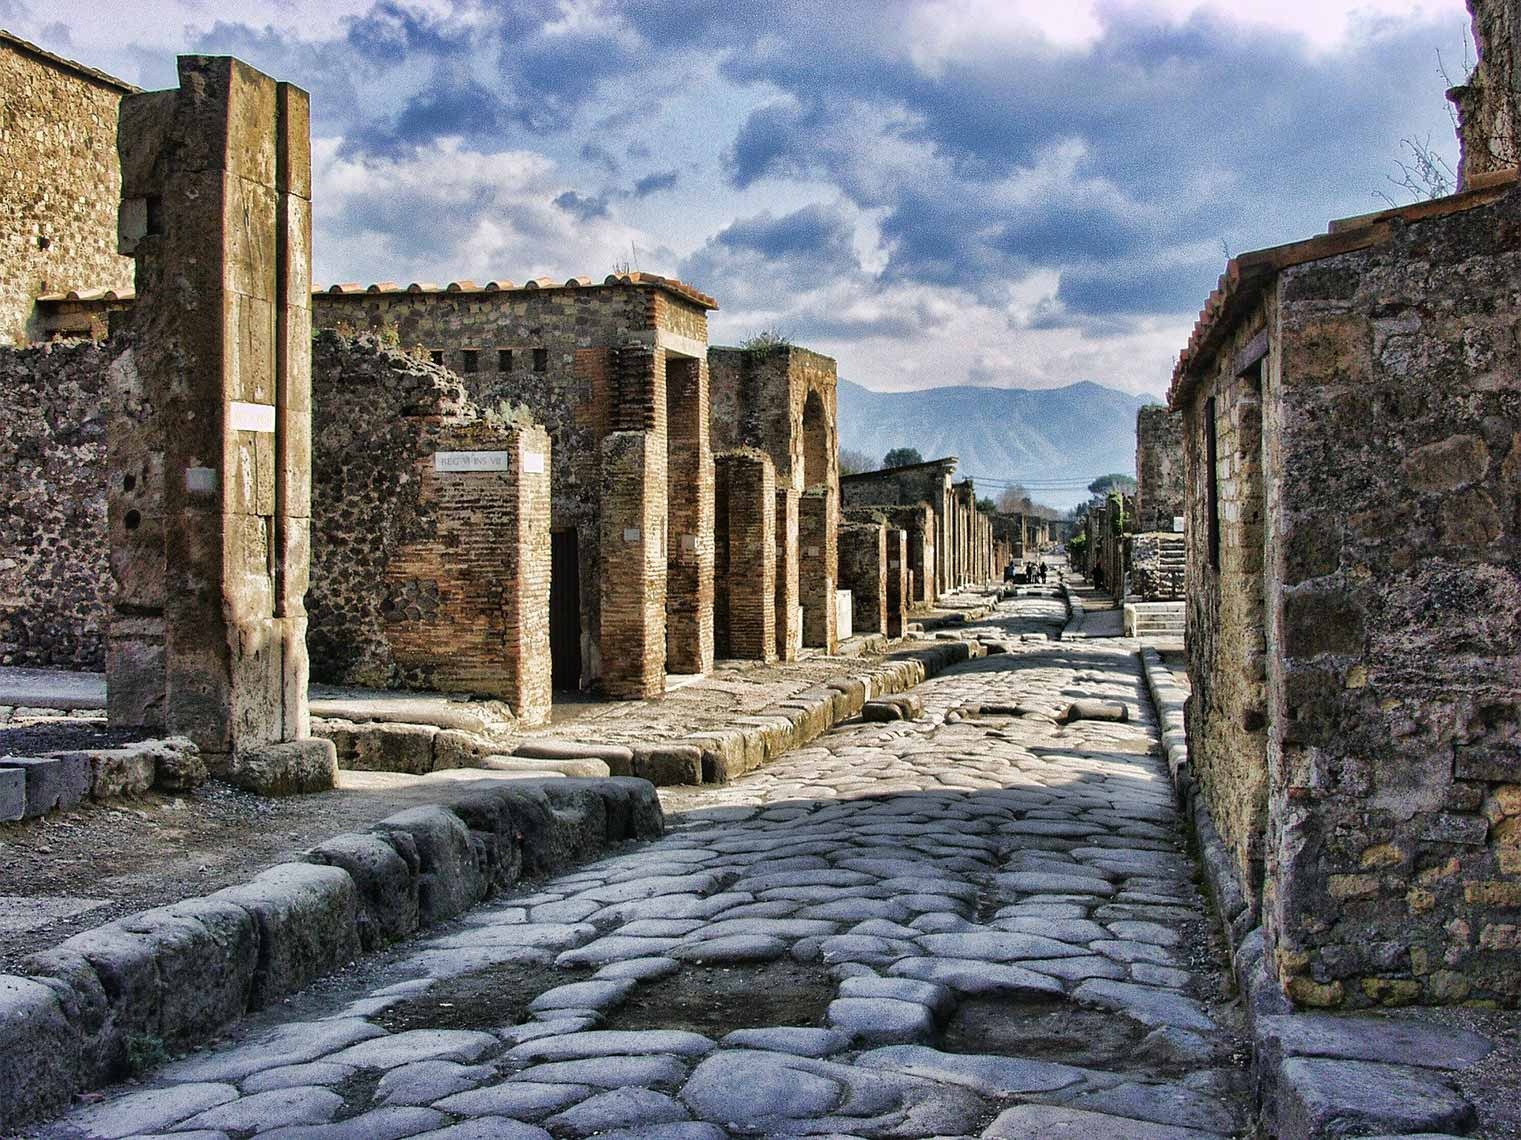 Your private guide will reveal the history and secrets of Pompeii as you walk among the ruins on your tour.